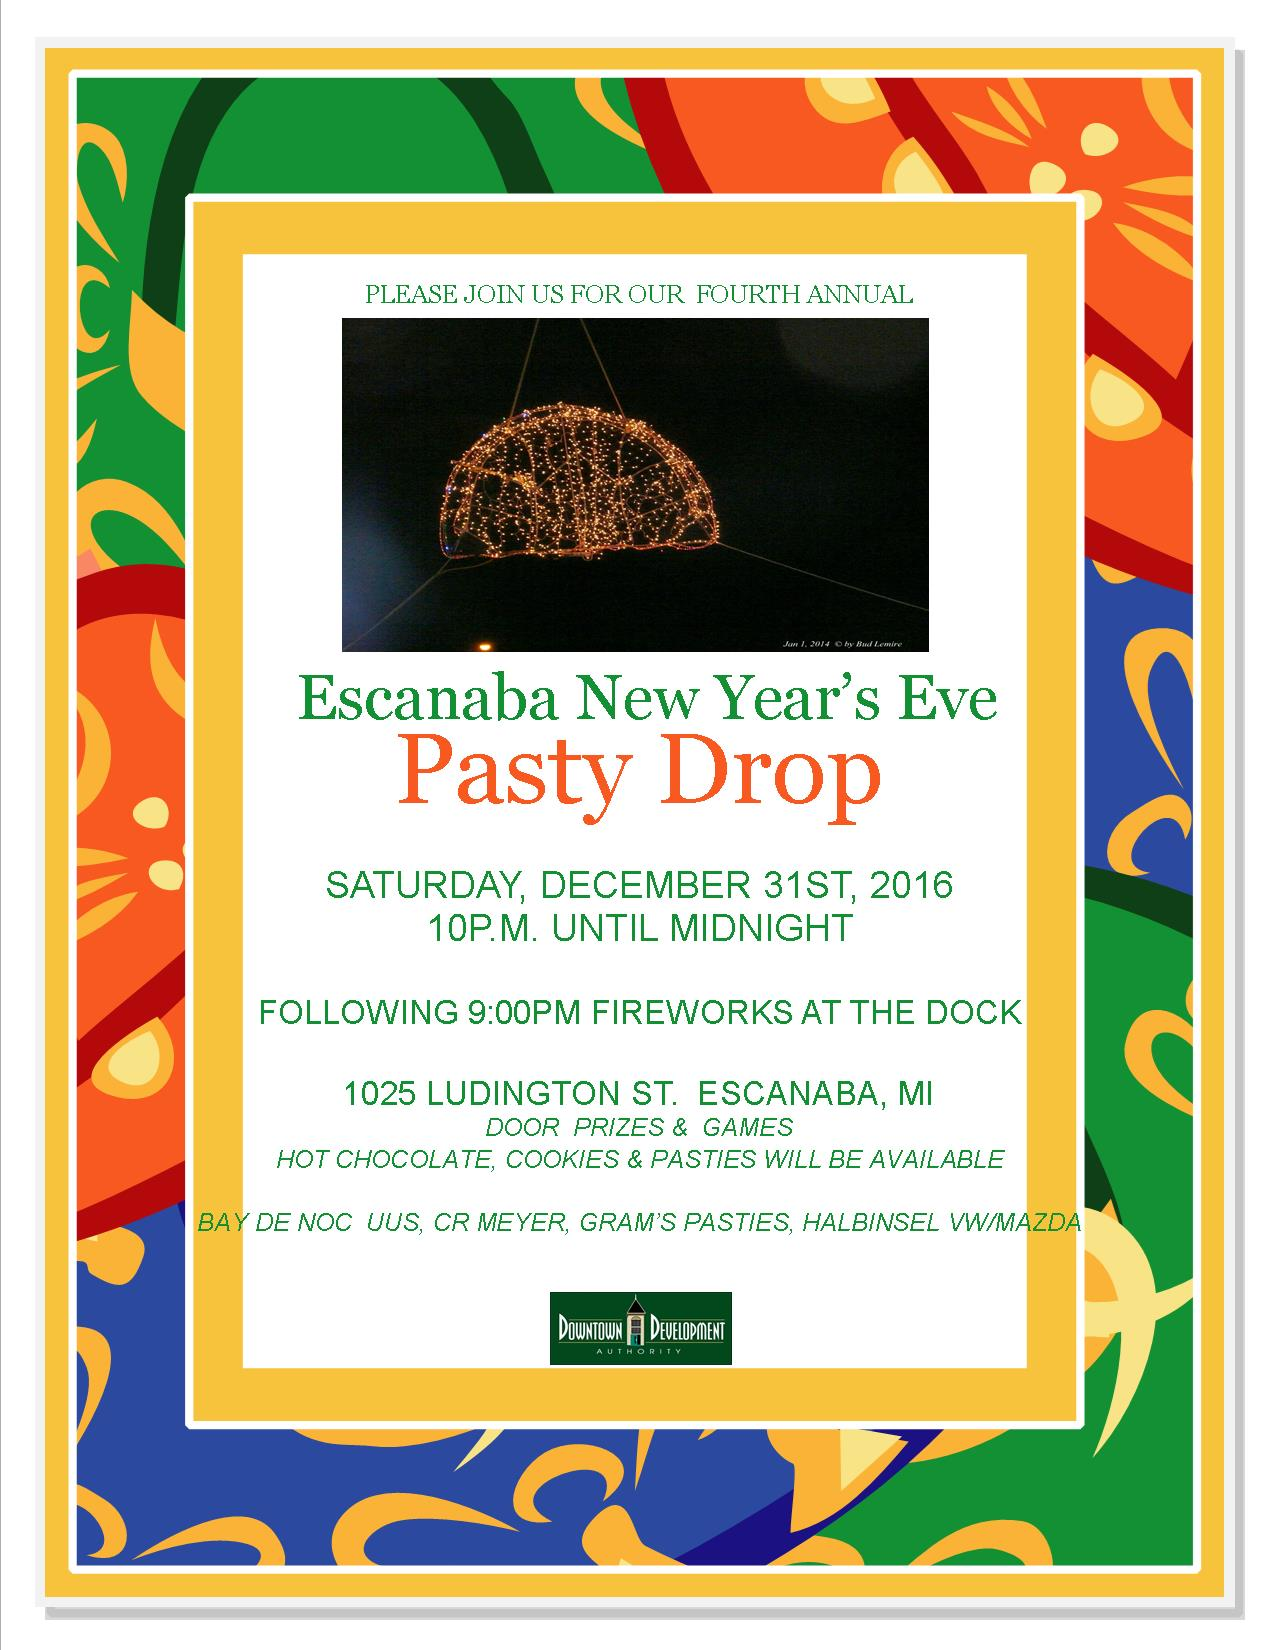 2016 4th Annual Pasty Drop & Frieworks